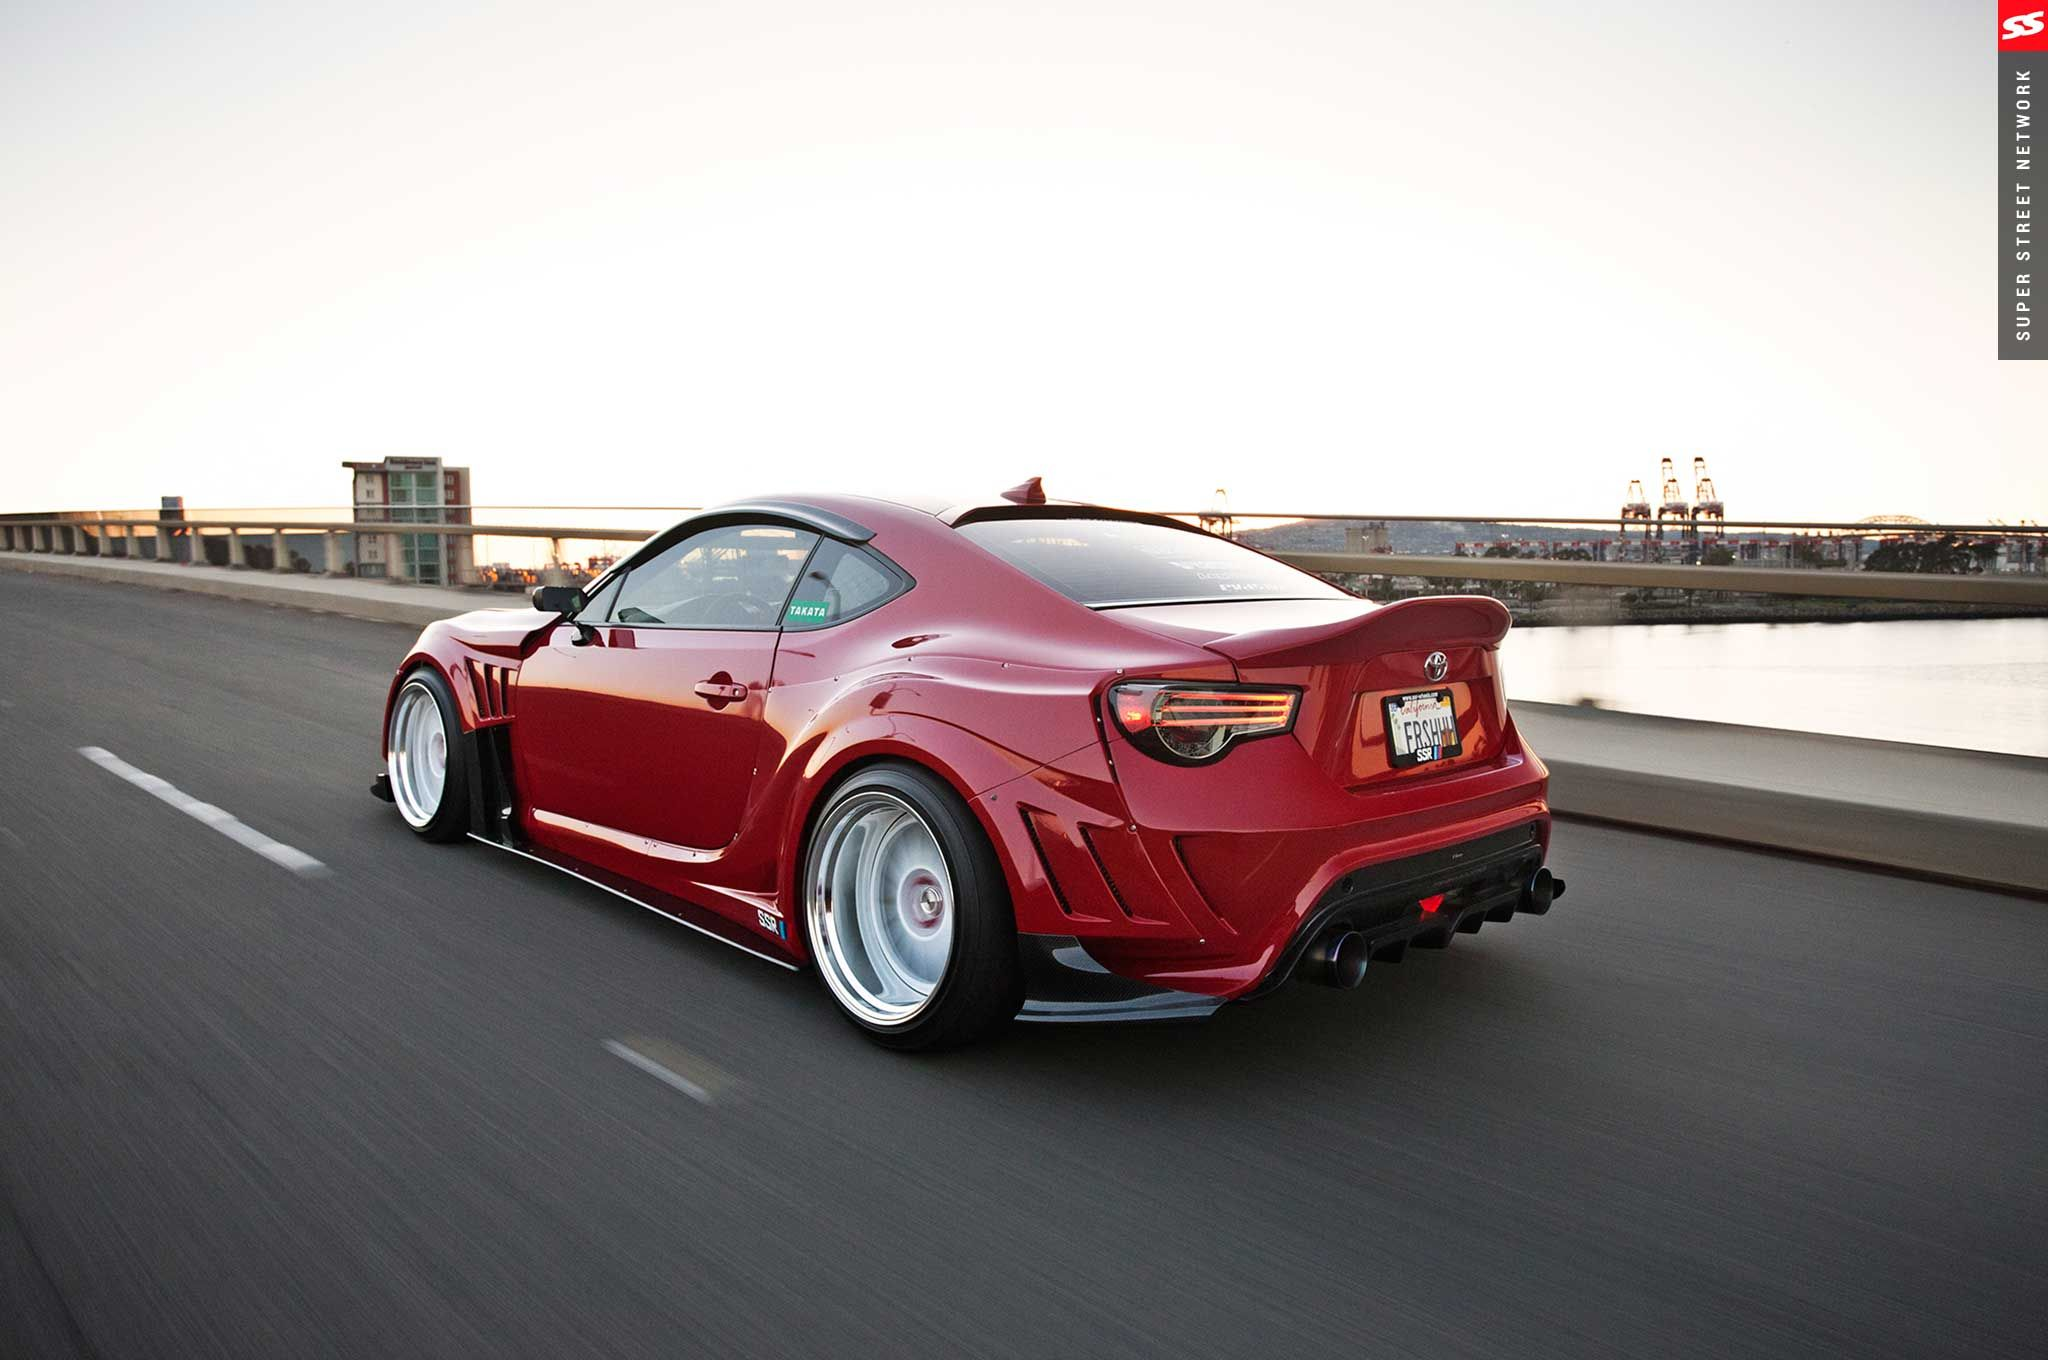 canibeatnoel u0026 39 s scion frs varis widebody